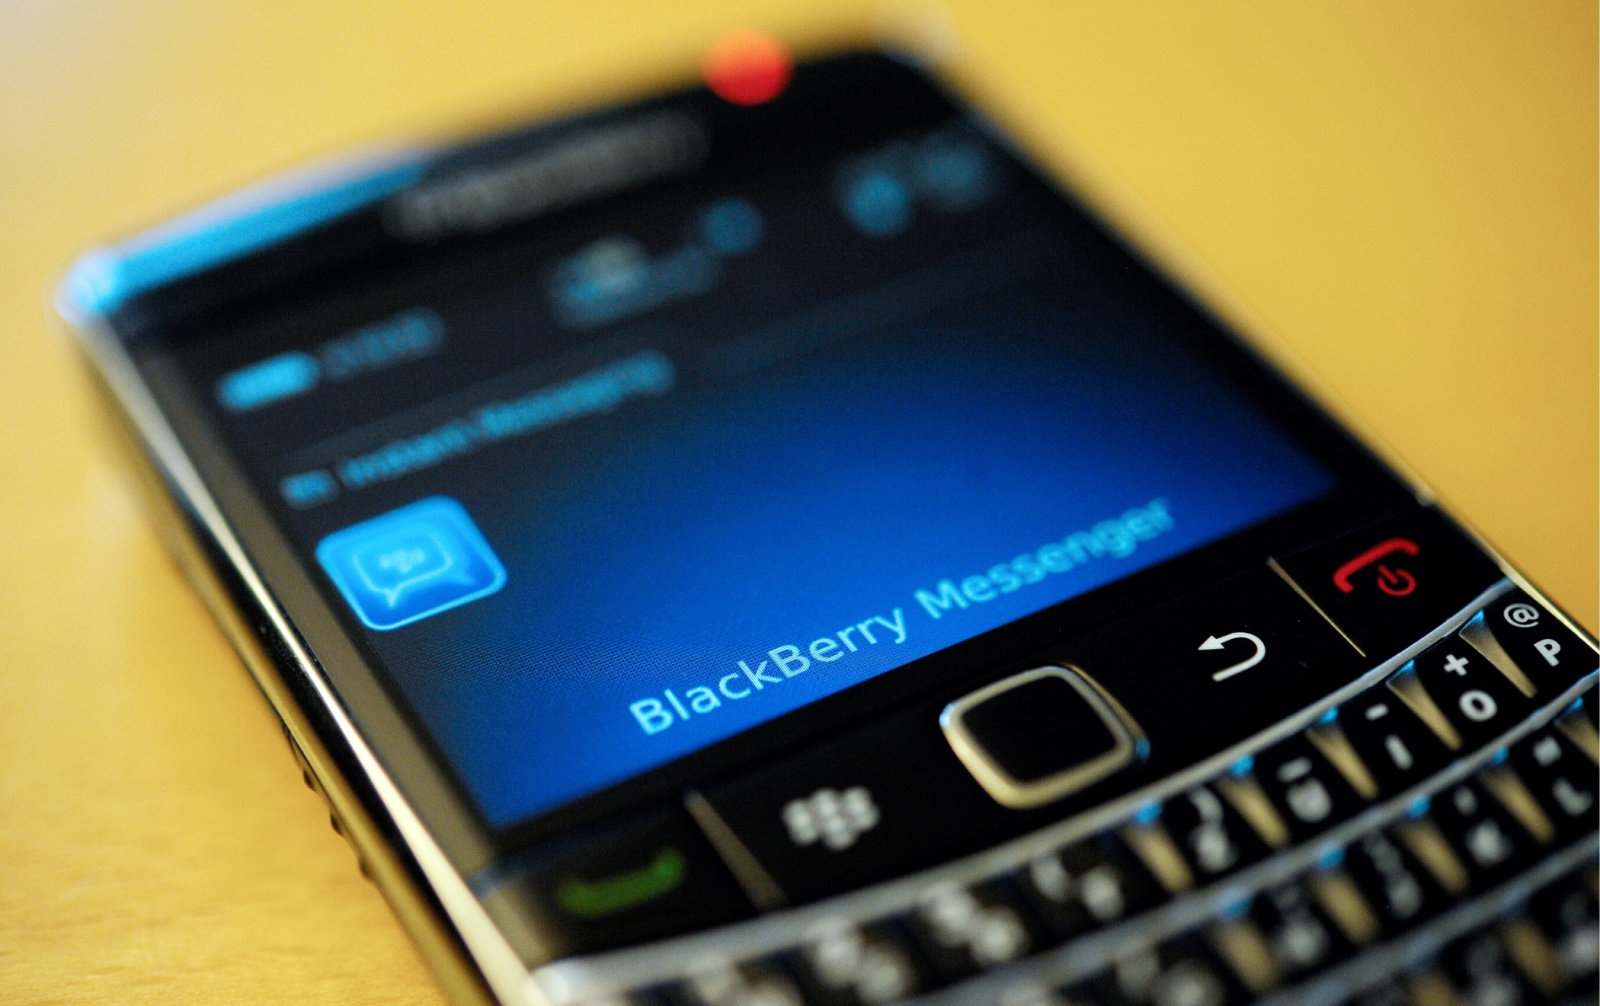 BlackBerry Messenger shuts down for good today | DeviceDaily.com